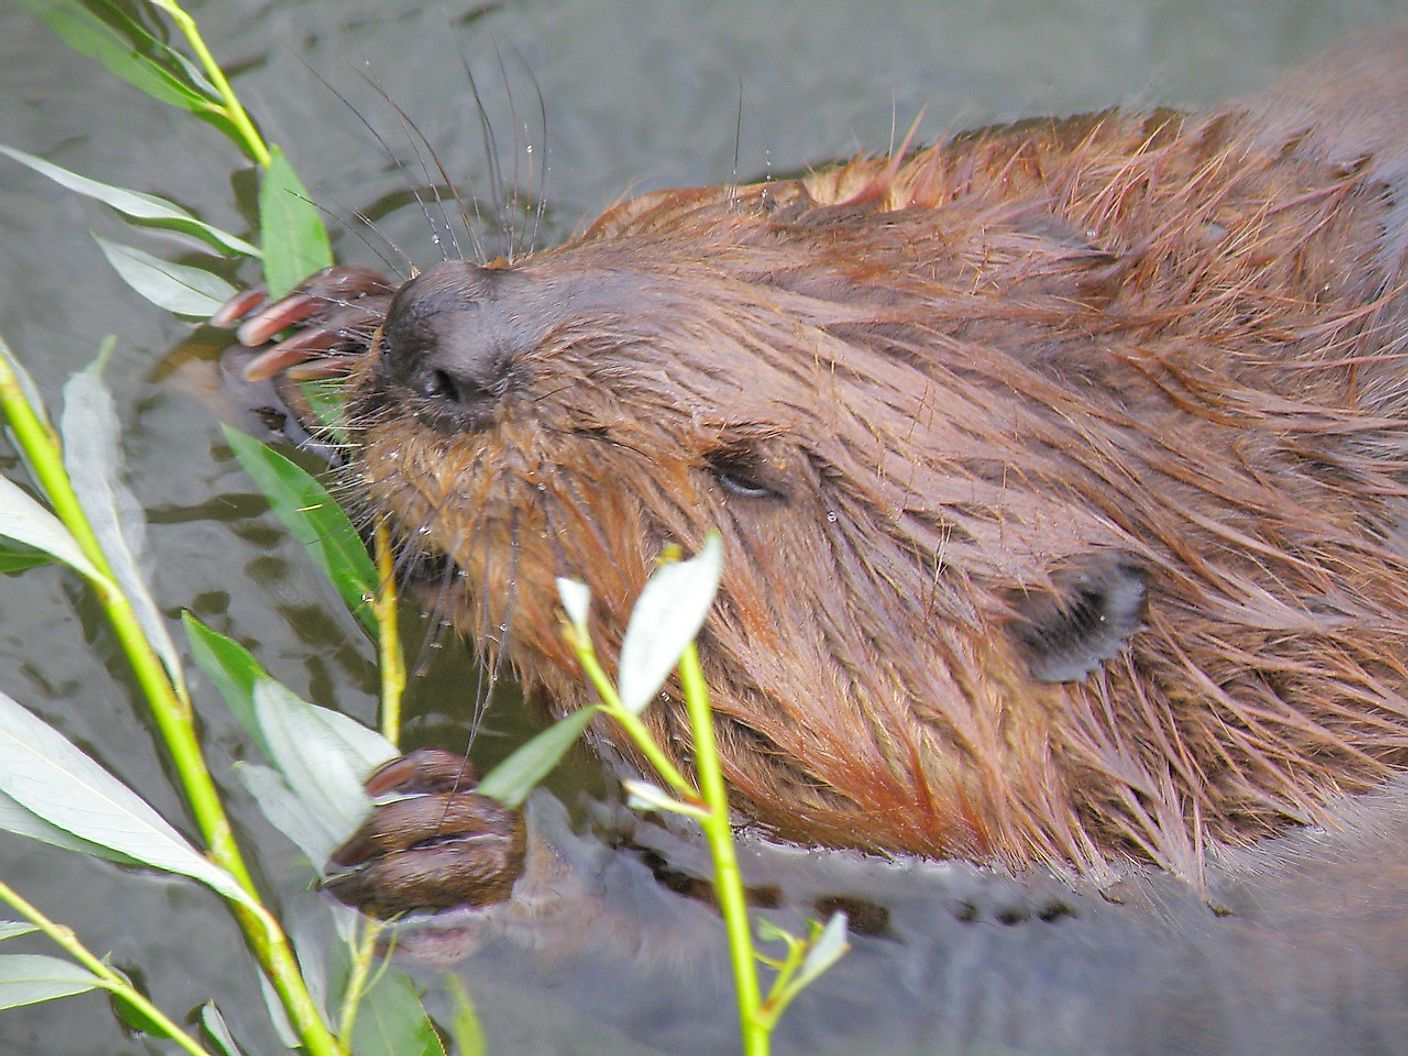 Beavers spend much of their time building the homes in which they will raise their young and stay away from hungry predators.